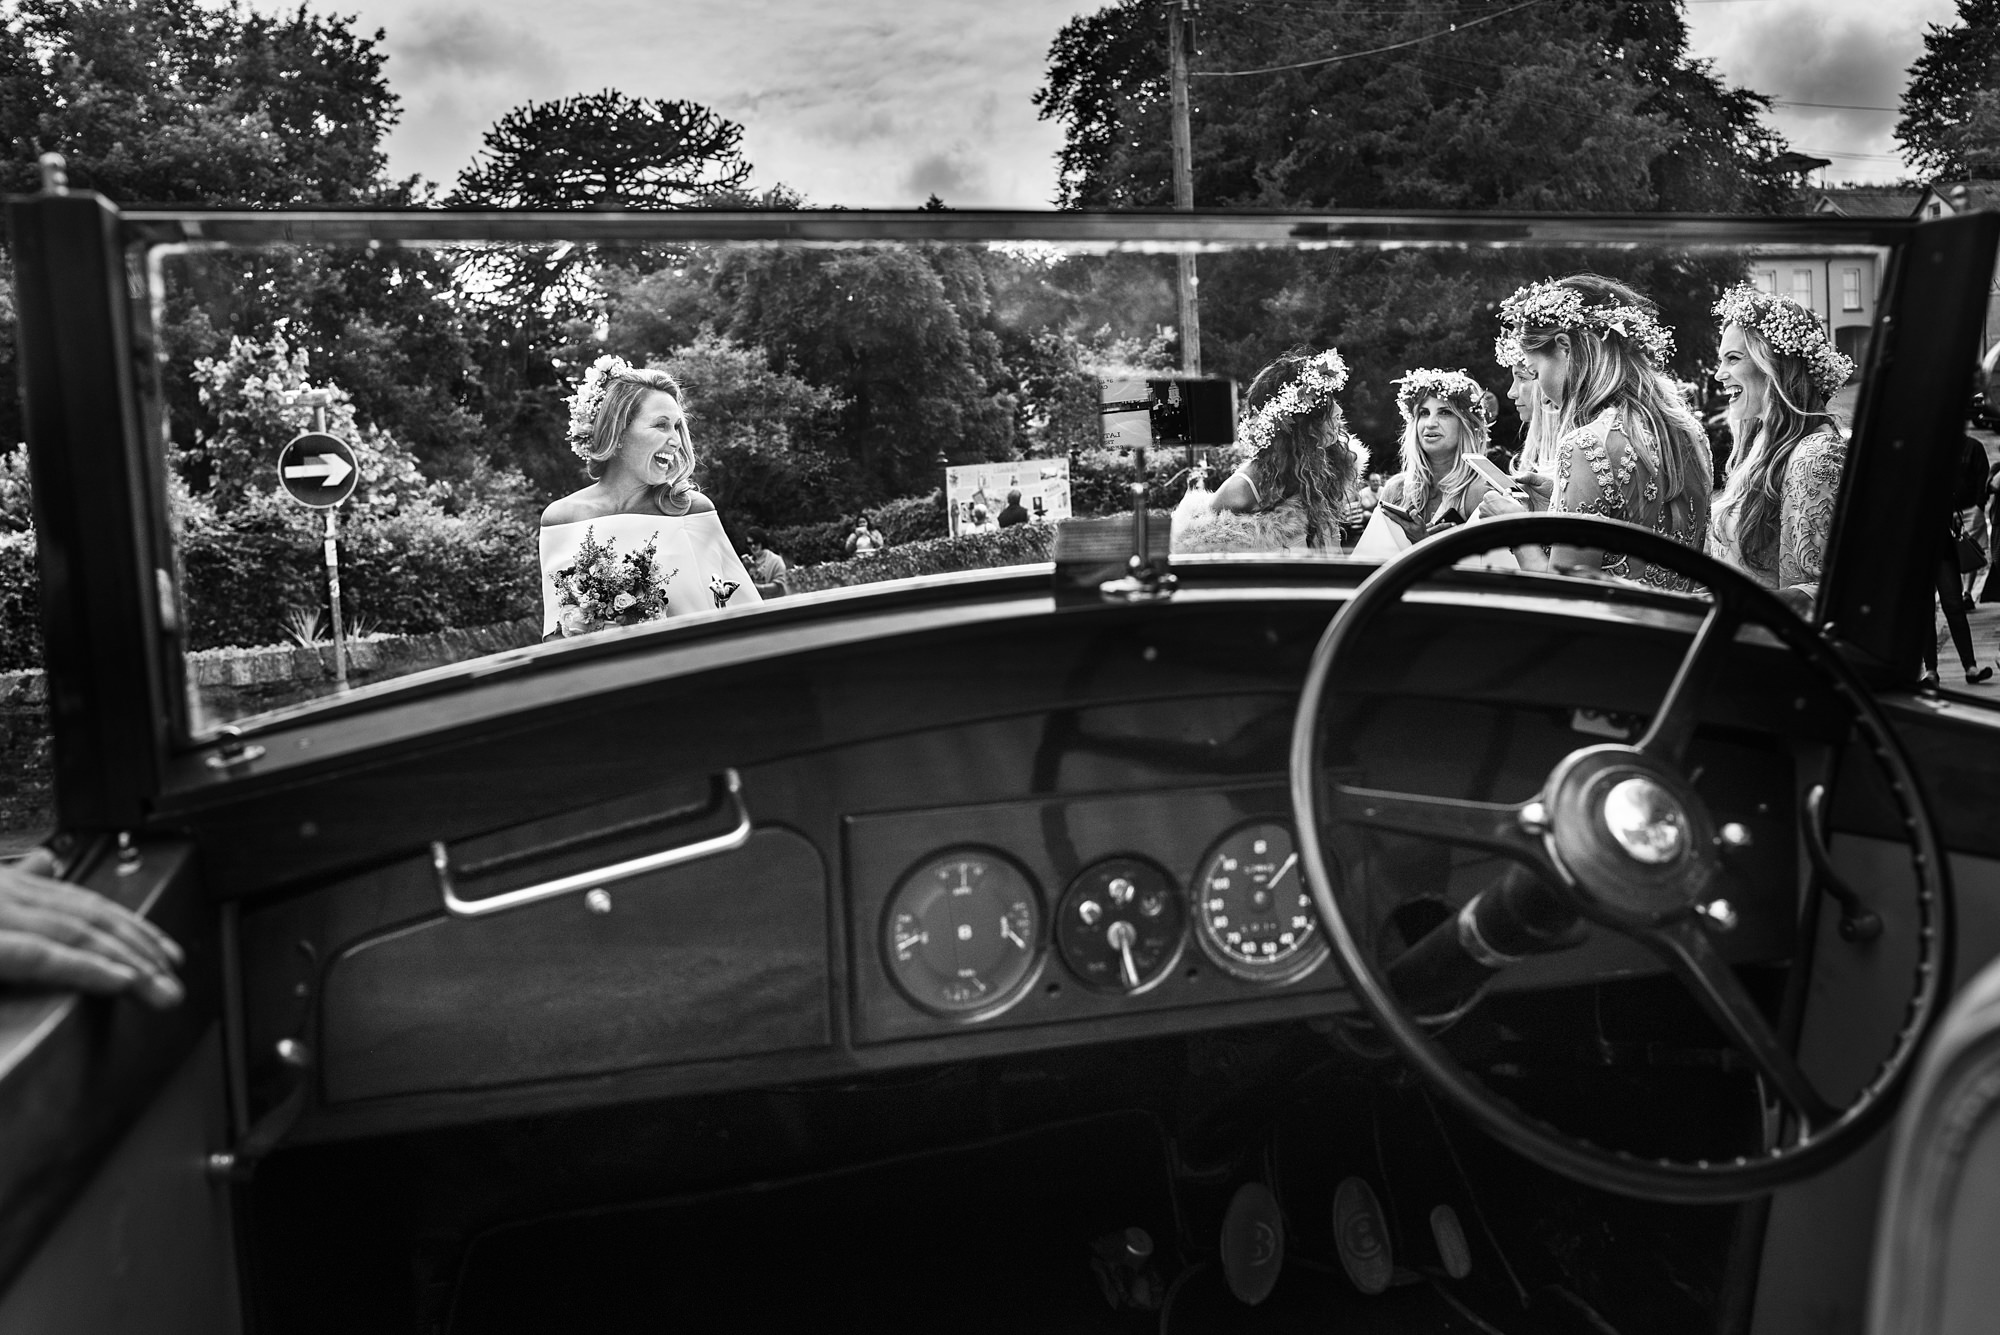 Bride and bridesmaids through windshield of vintage car - photo by Look Fotographia